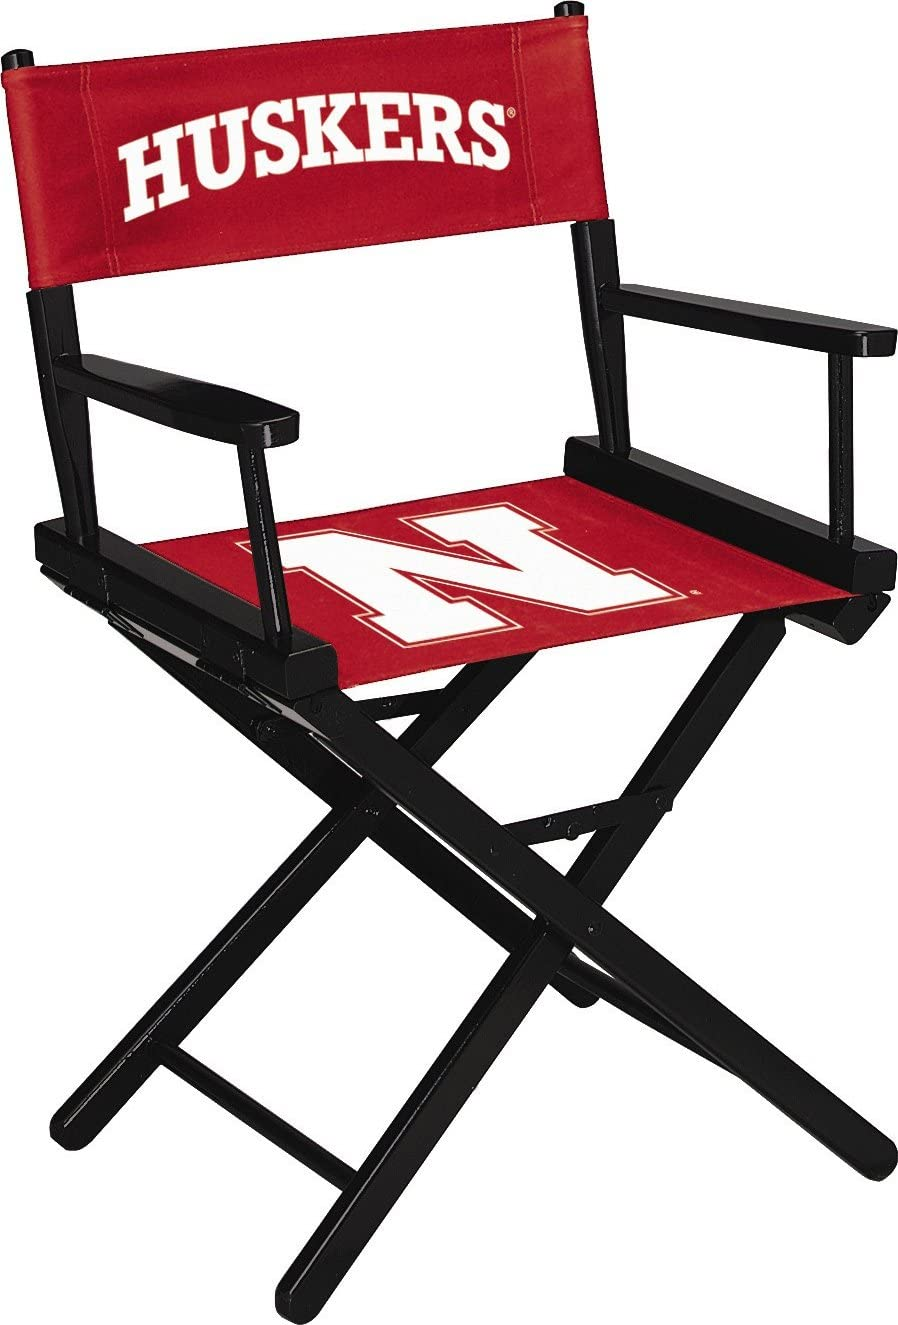 Imperial Officially Licensed NCAA Furniture: Height Short High quality Recommended Table